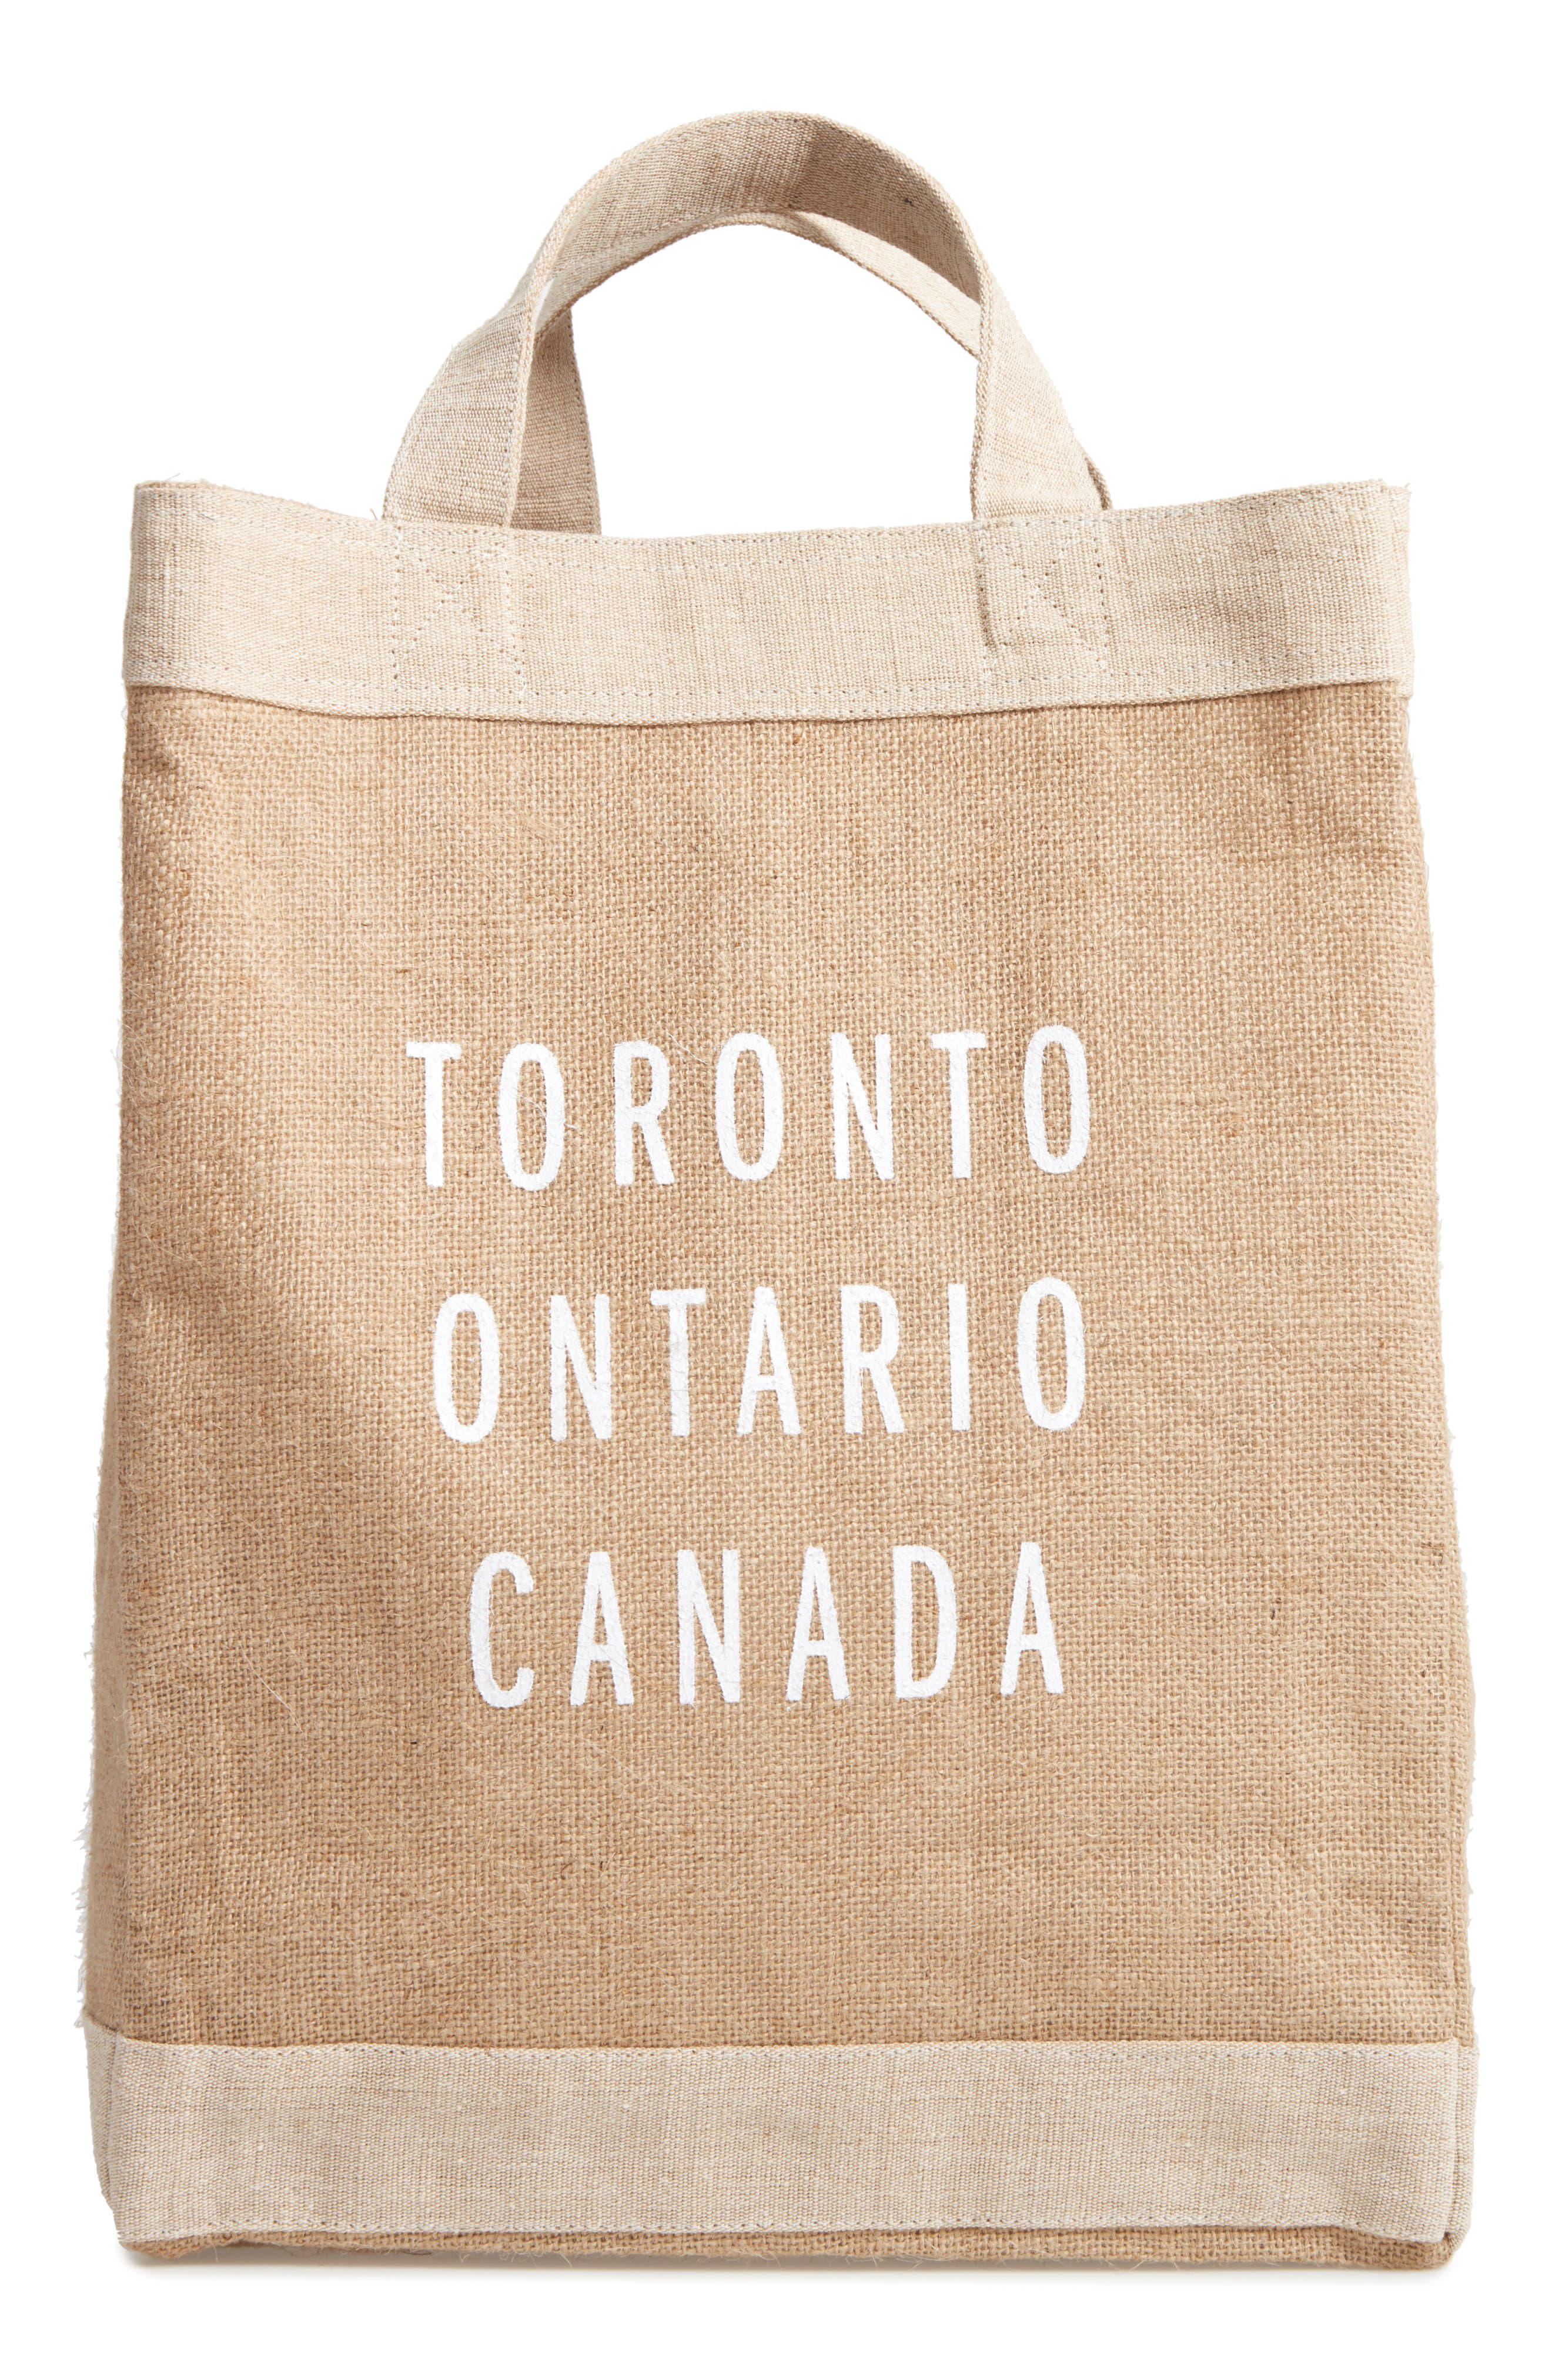 Toronto Simple Market Bag,                             Main thumbnail 1, color,                             200